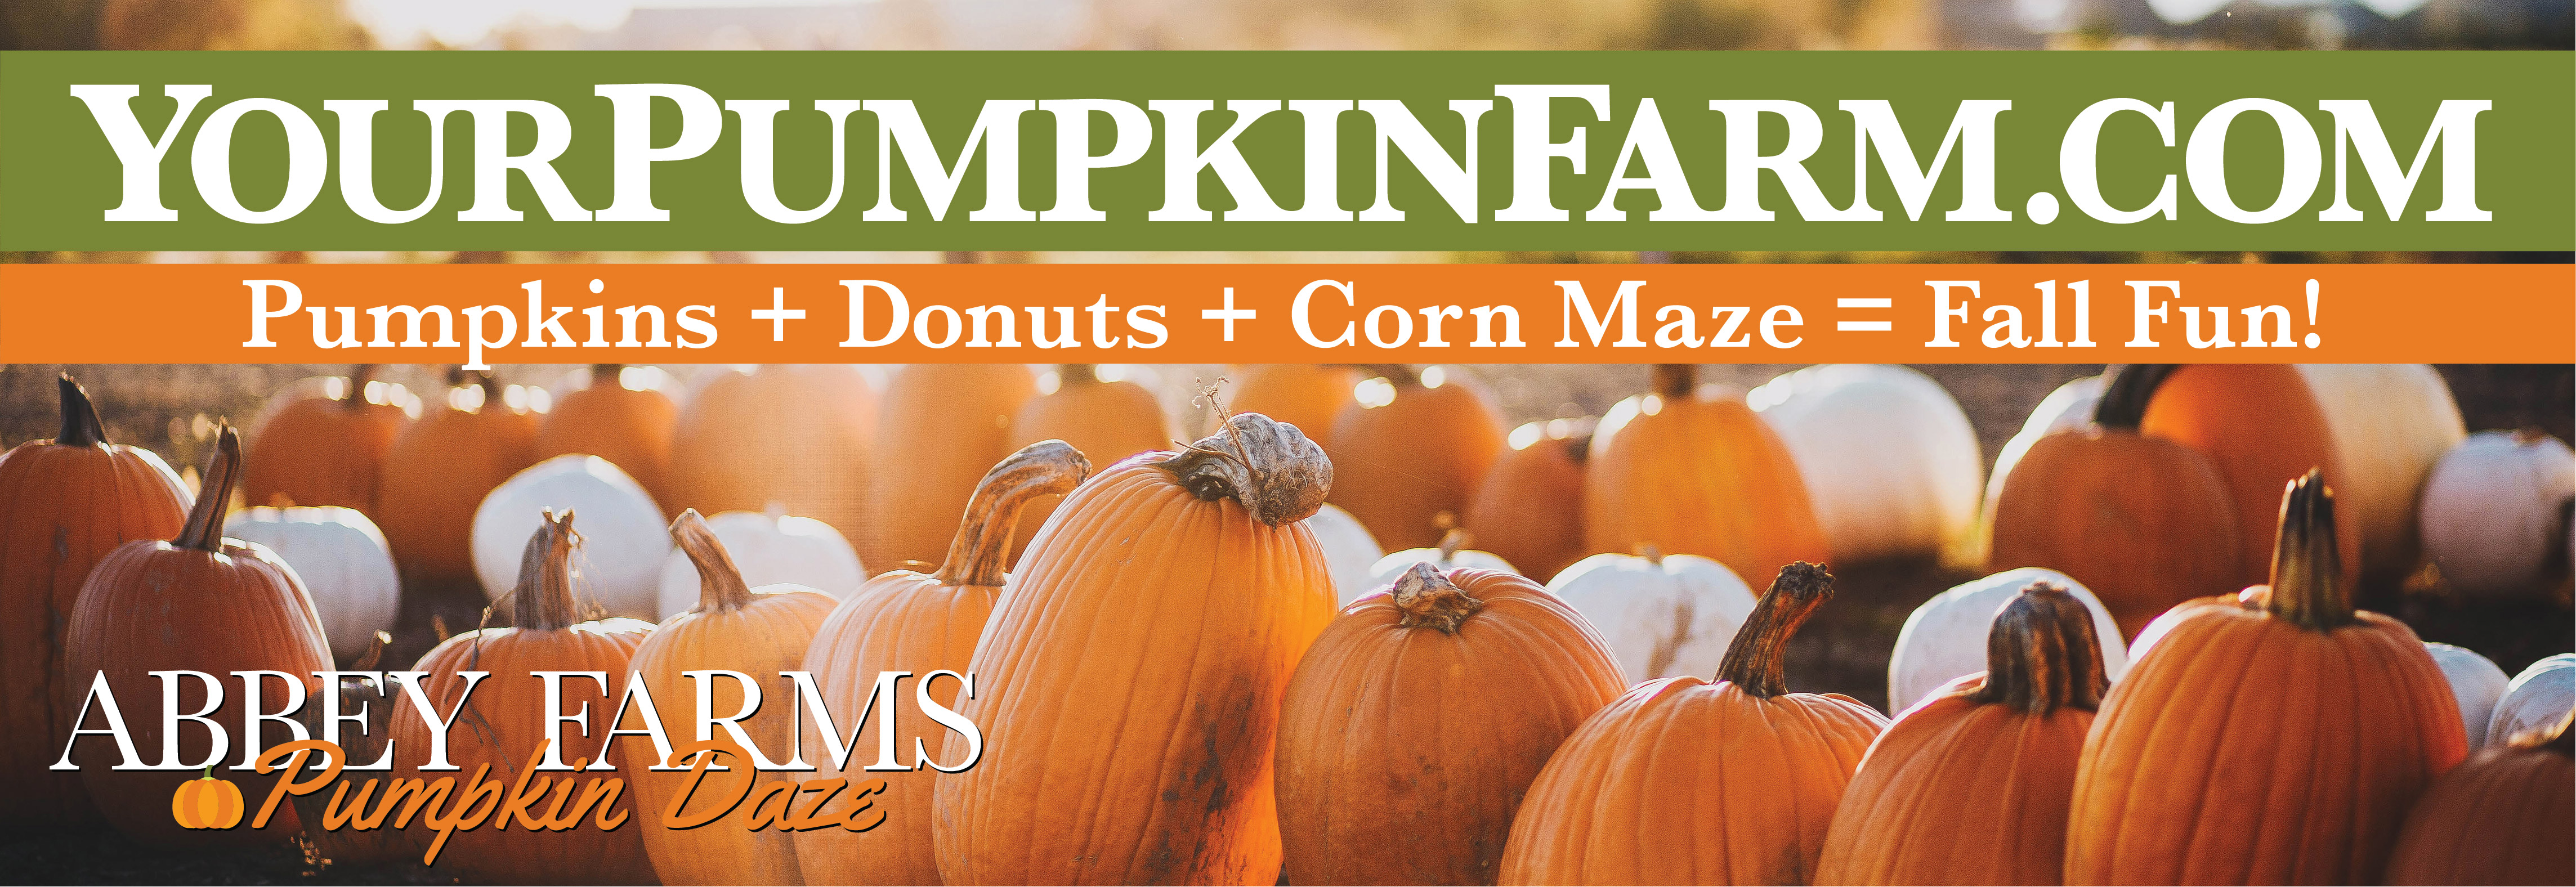 Abbey Farms of Marmion Abbey Pumpkin Daze